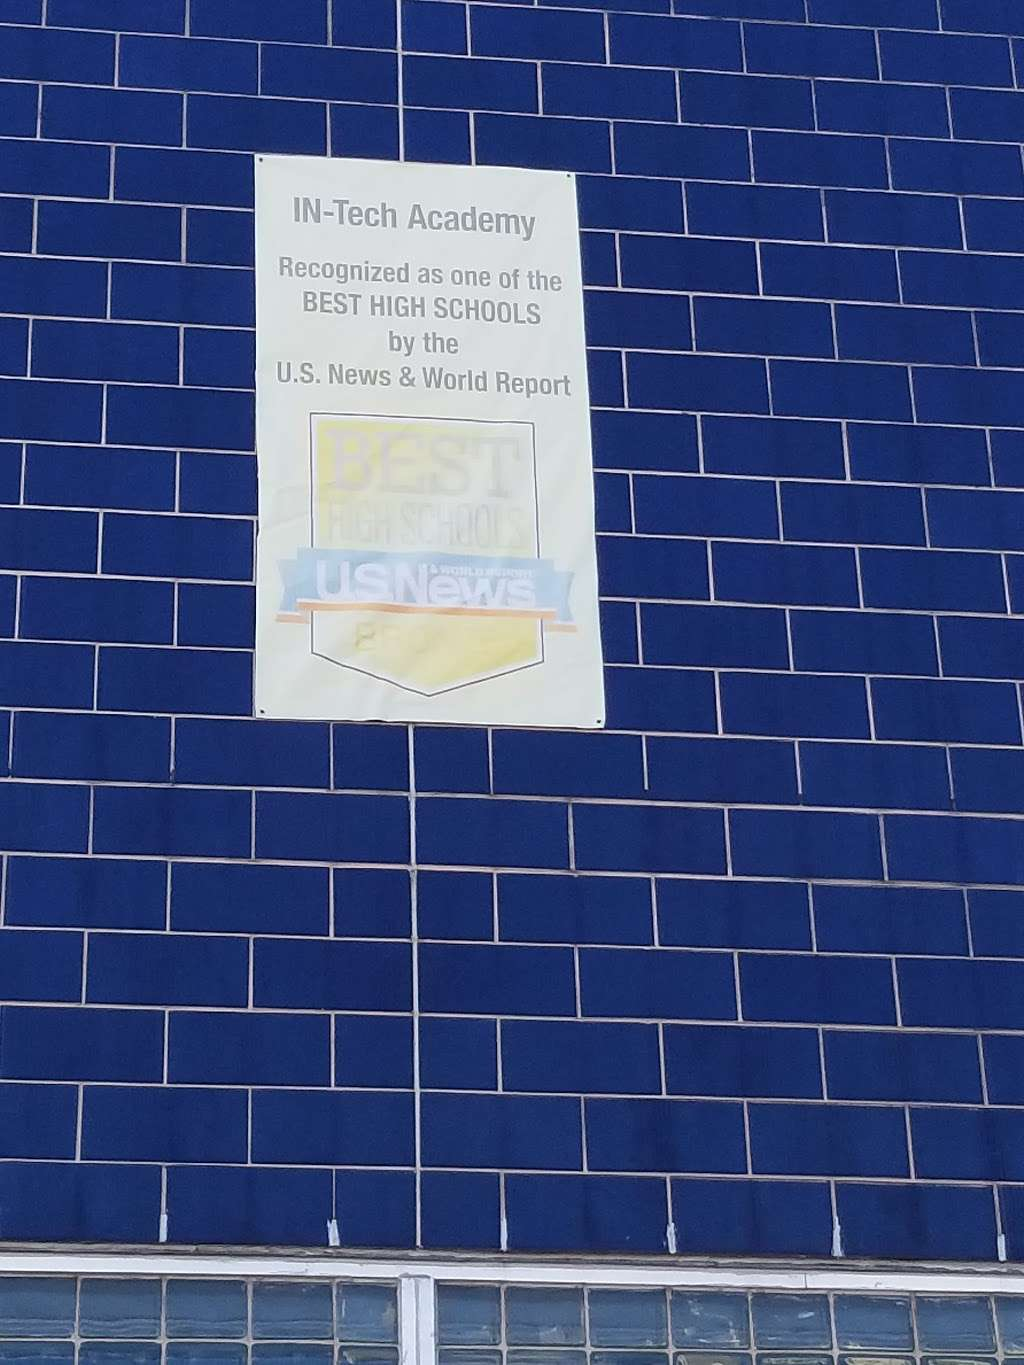 InTech Academy (M.S. / High School 368) - school  | Photo 8 of 8 | Address: 2975 Tibbett Ave, Bronx, NY 10463, USA | Phone: (718) 432-4300